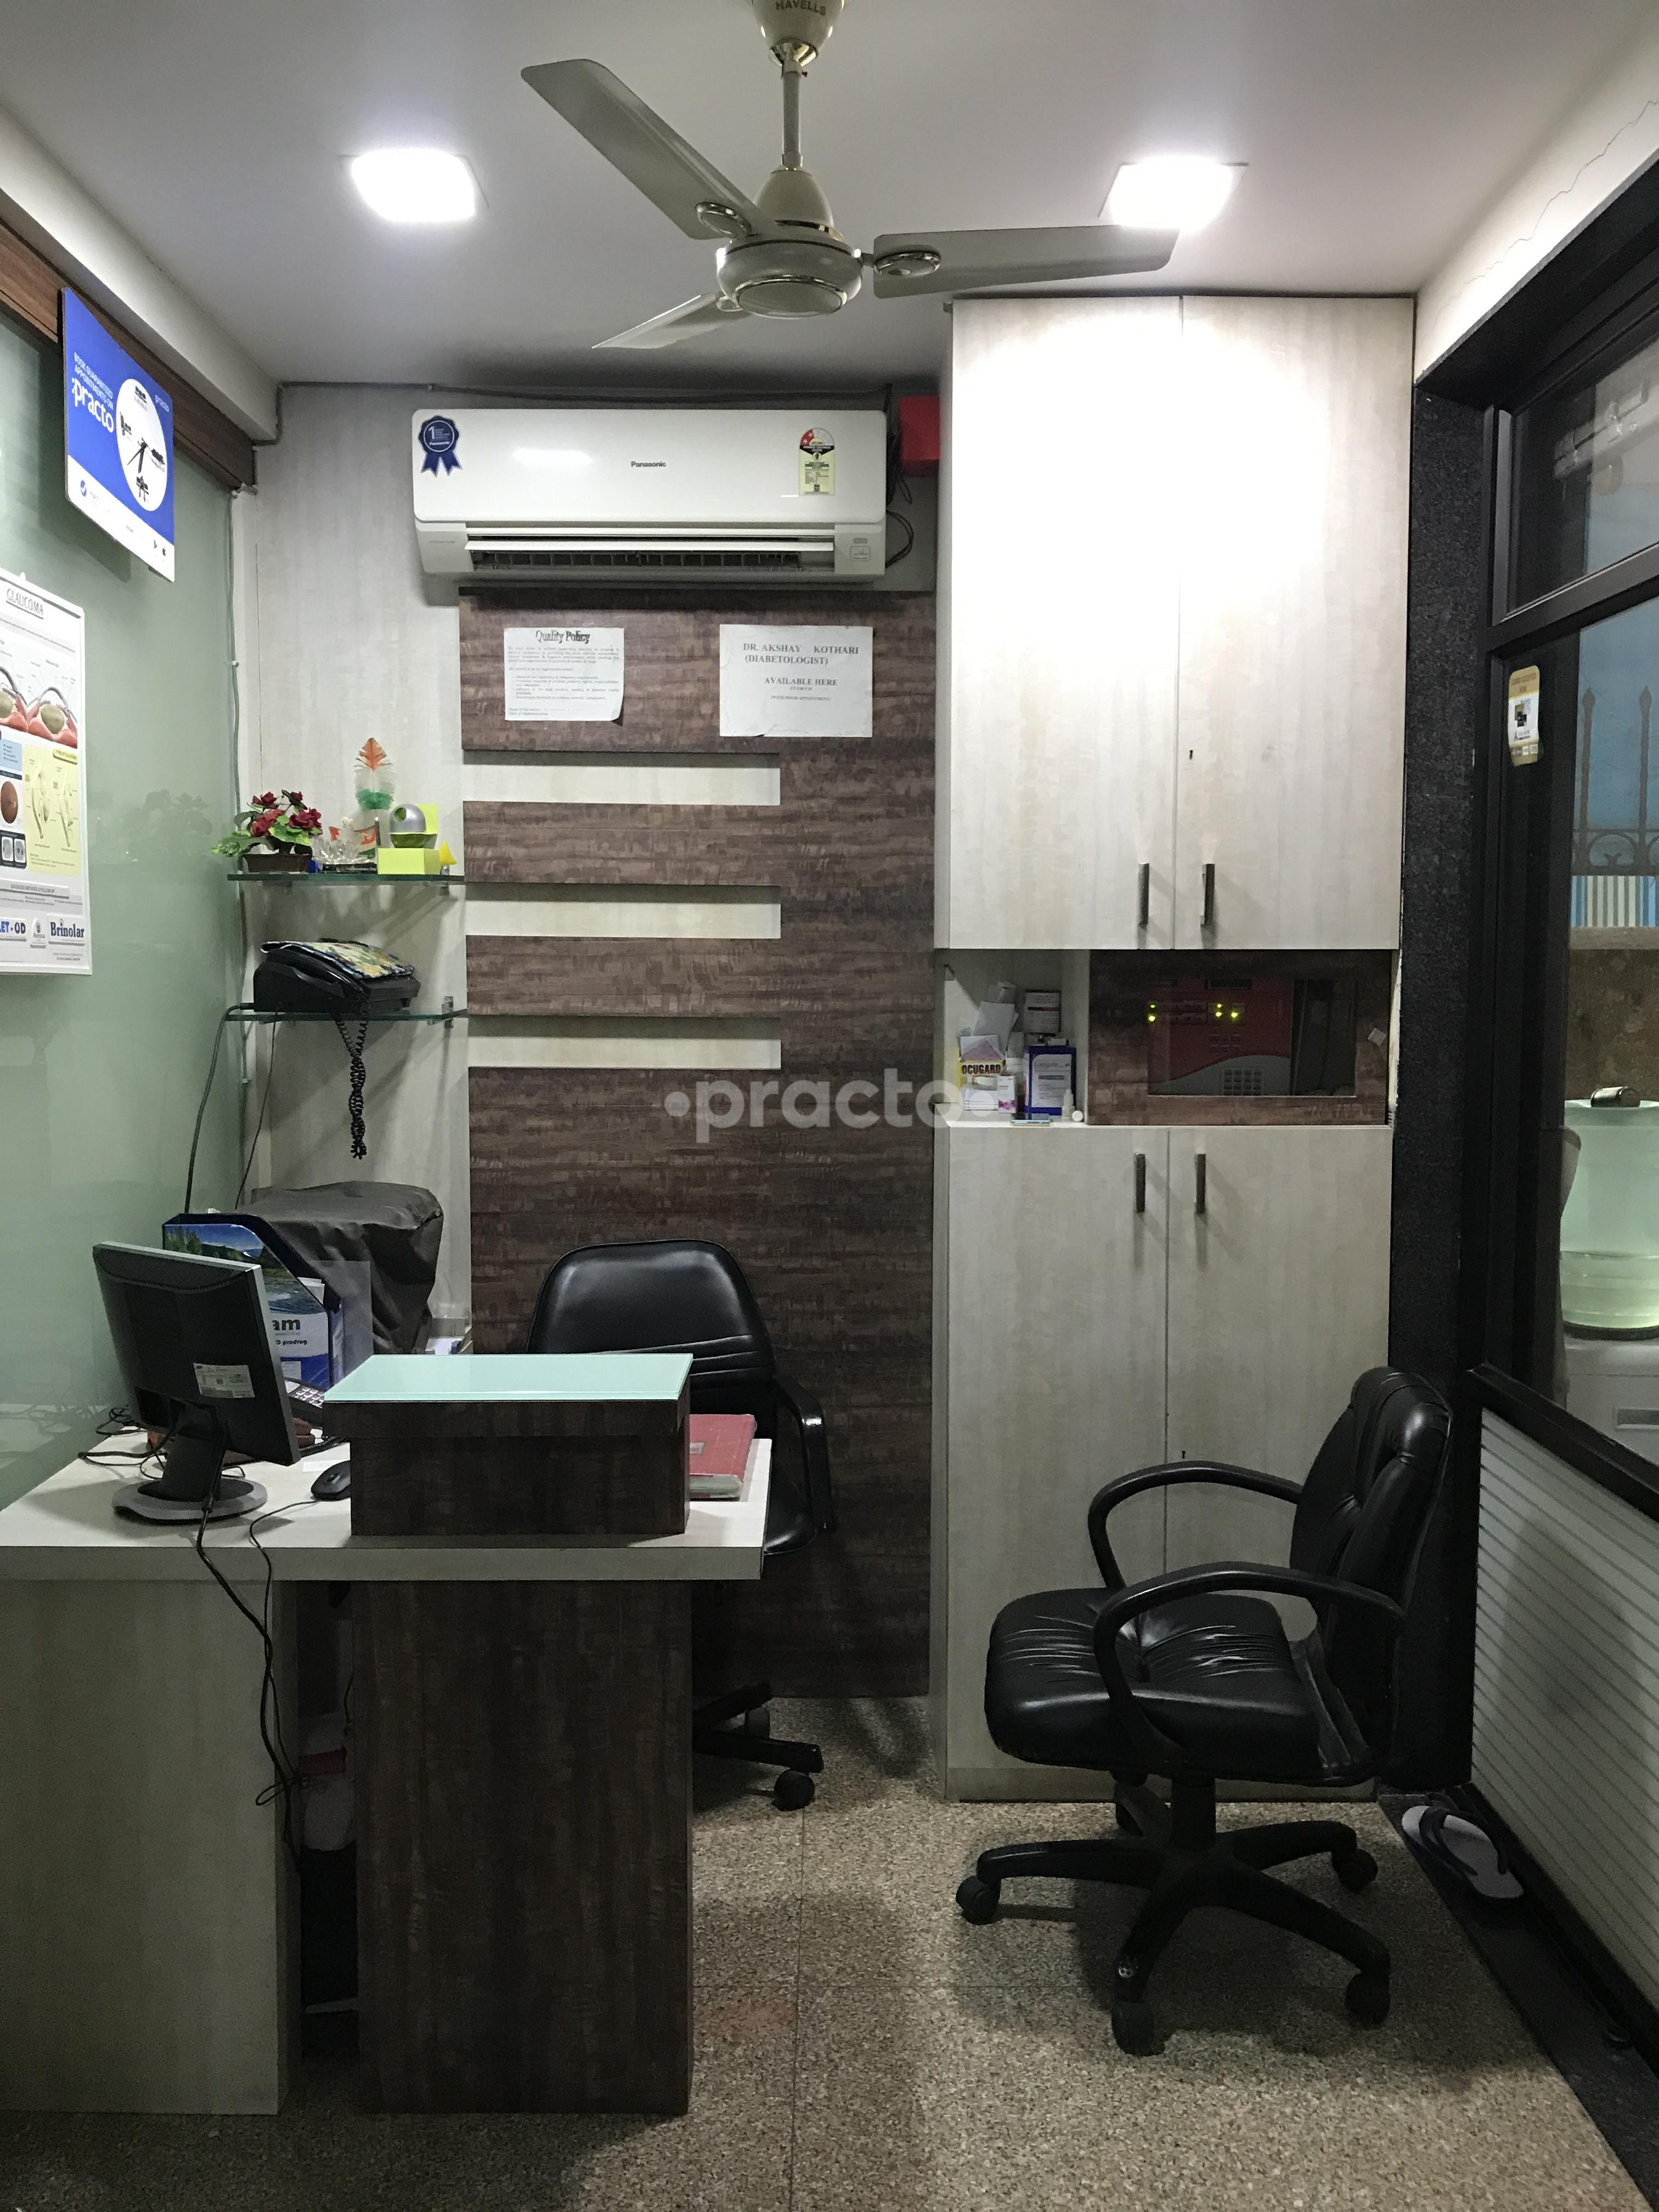 Best Low Vision Speciality Clinics in Andheri East Mumbai Book